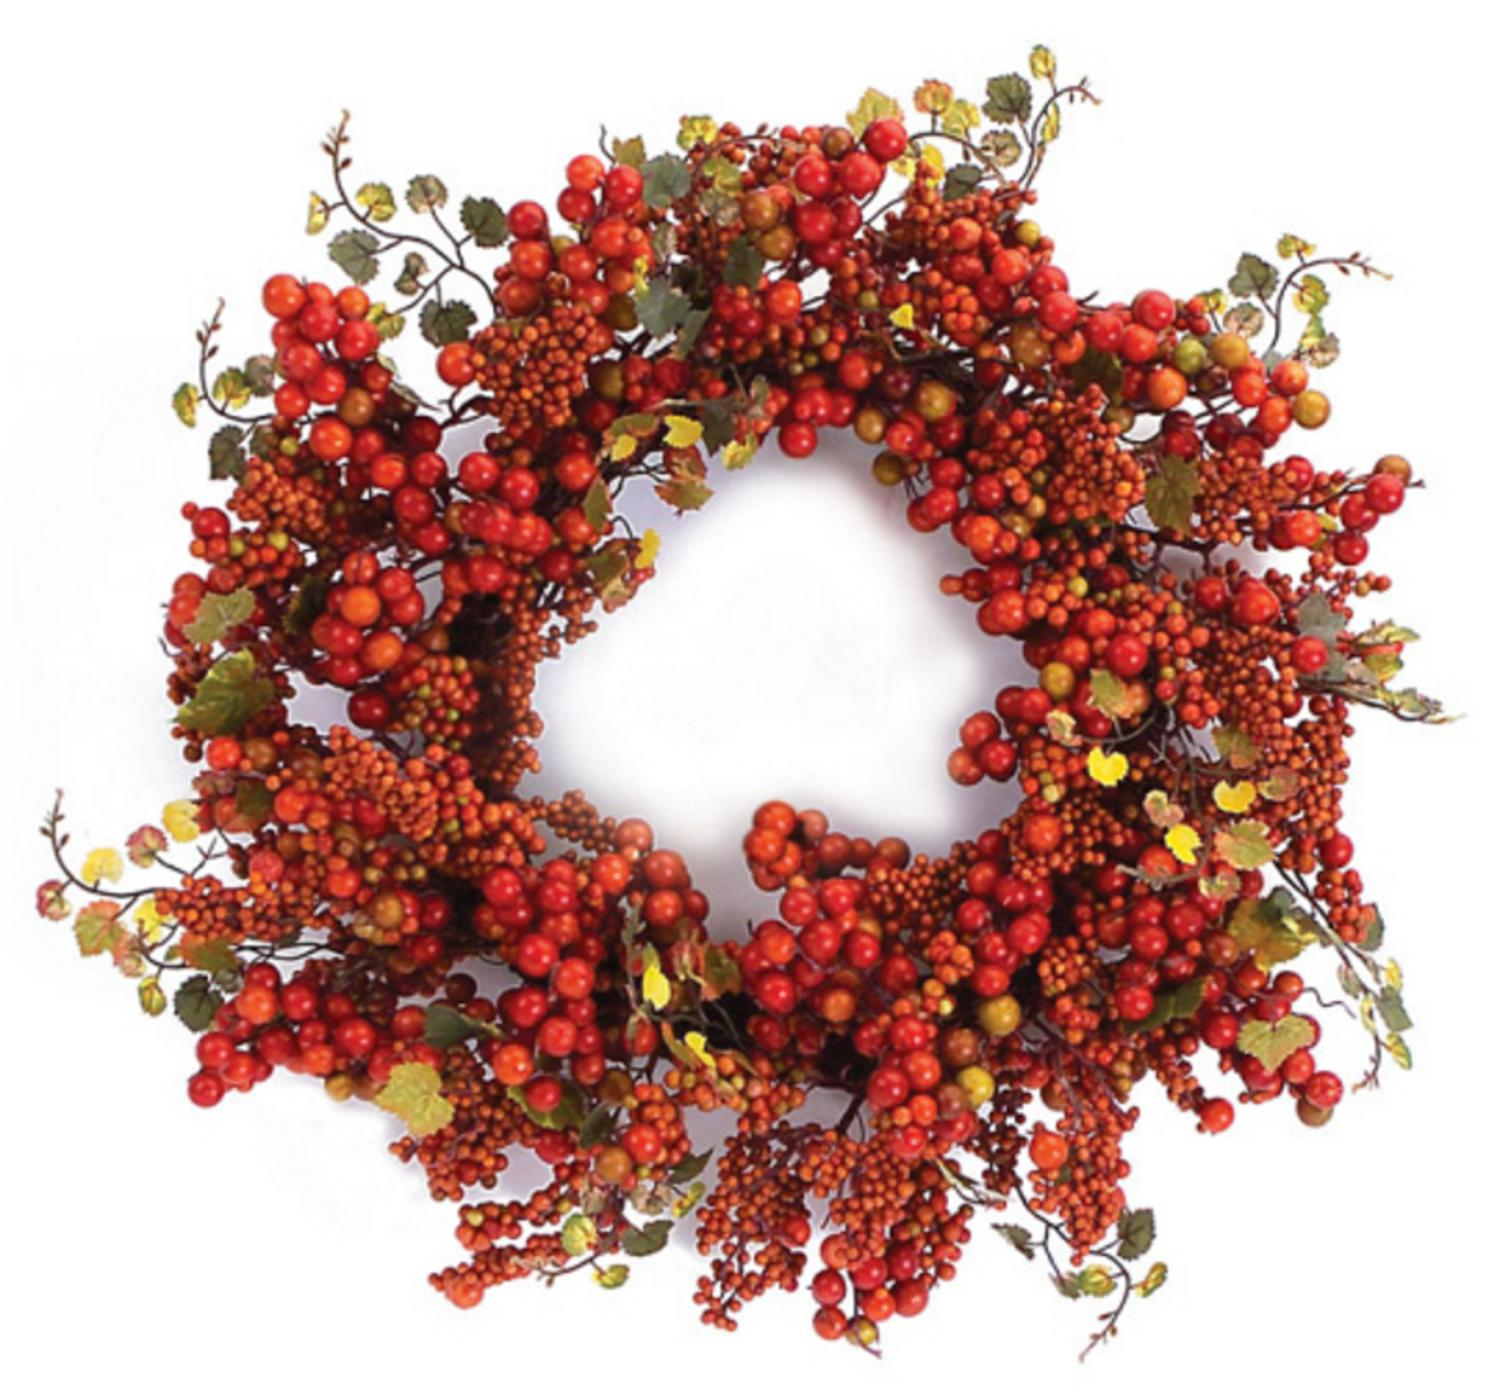 Pack of 2 Thanksgiving Fall Harvest Artificial Orange Berry & Grape Leaf Wreaths